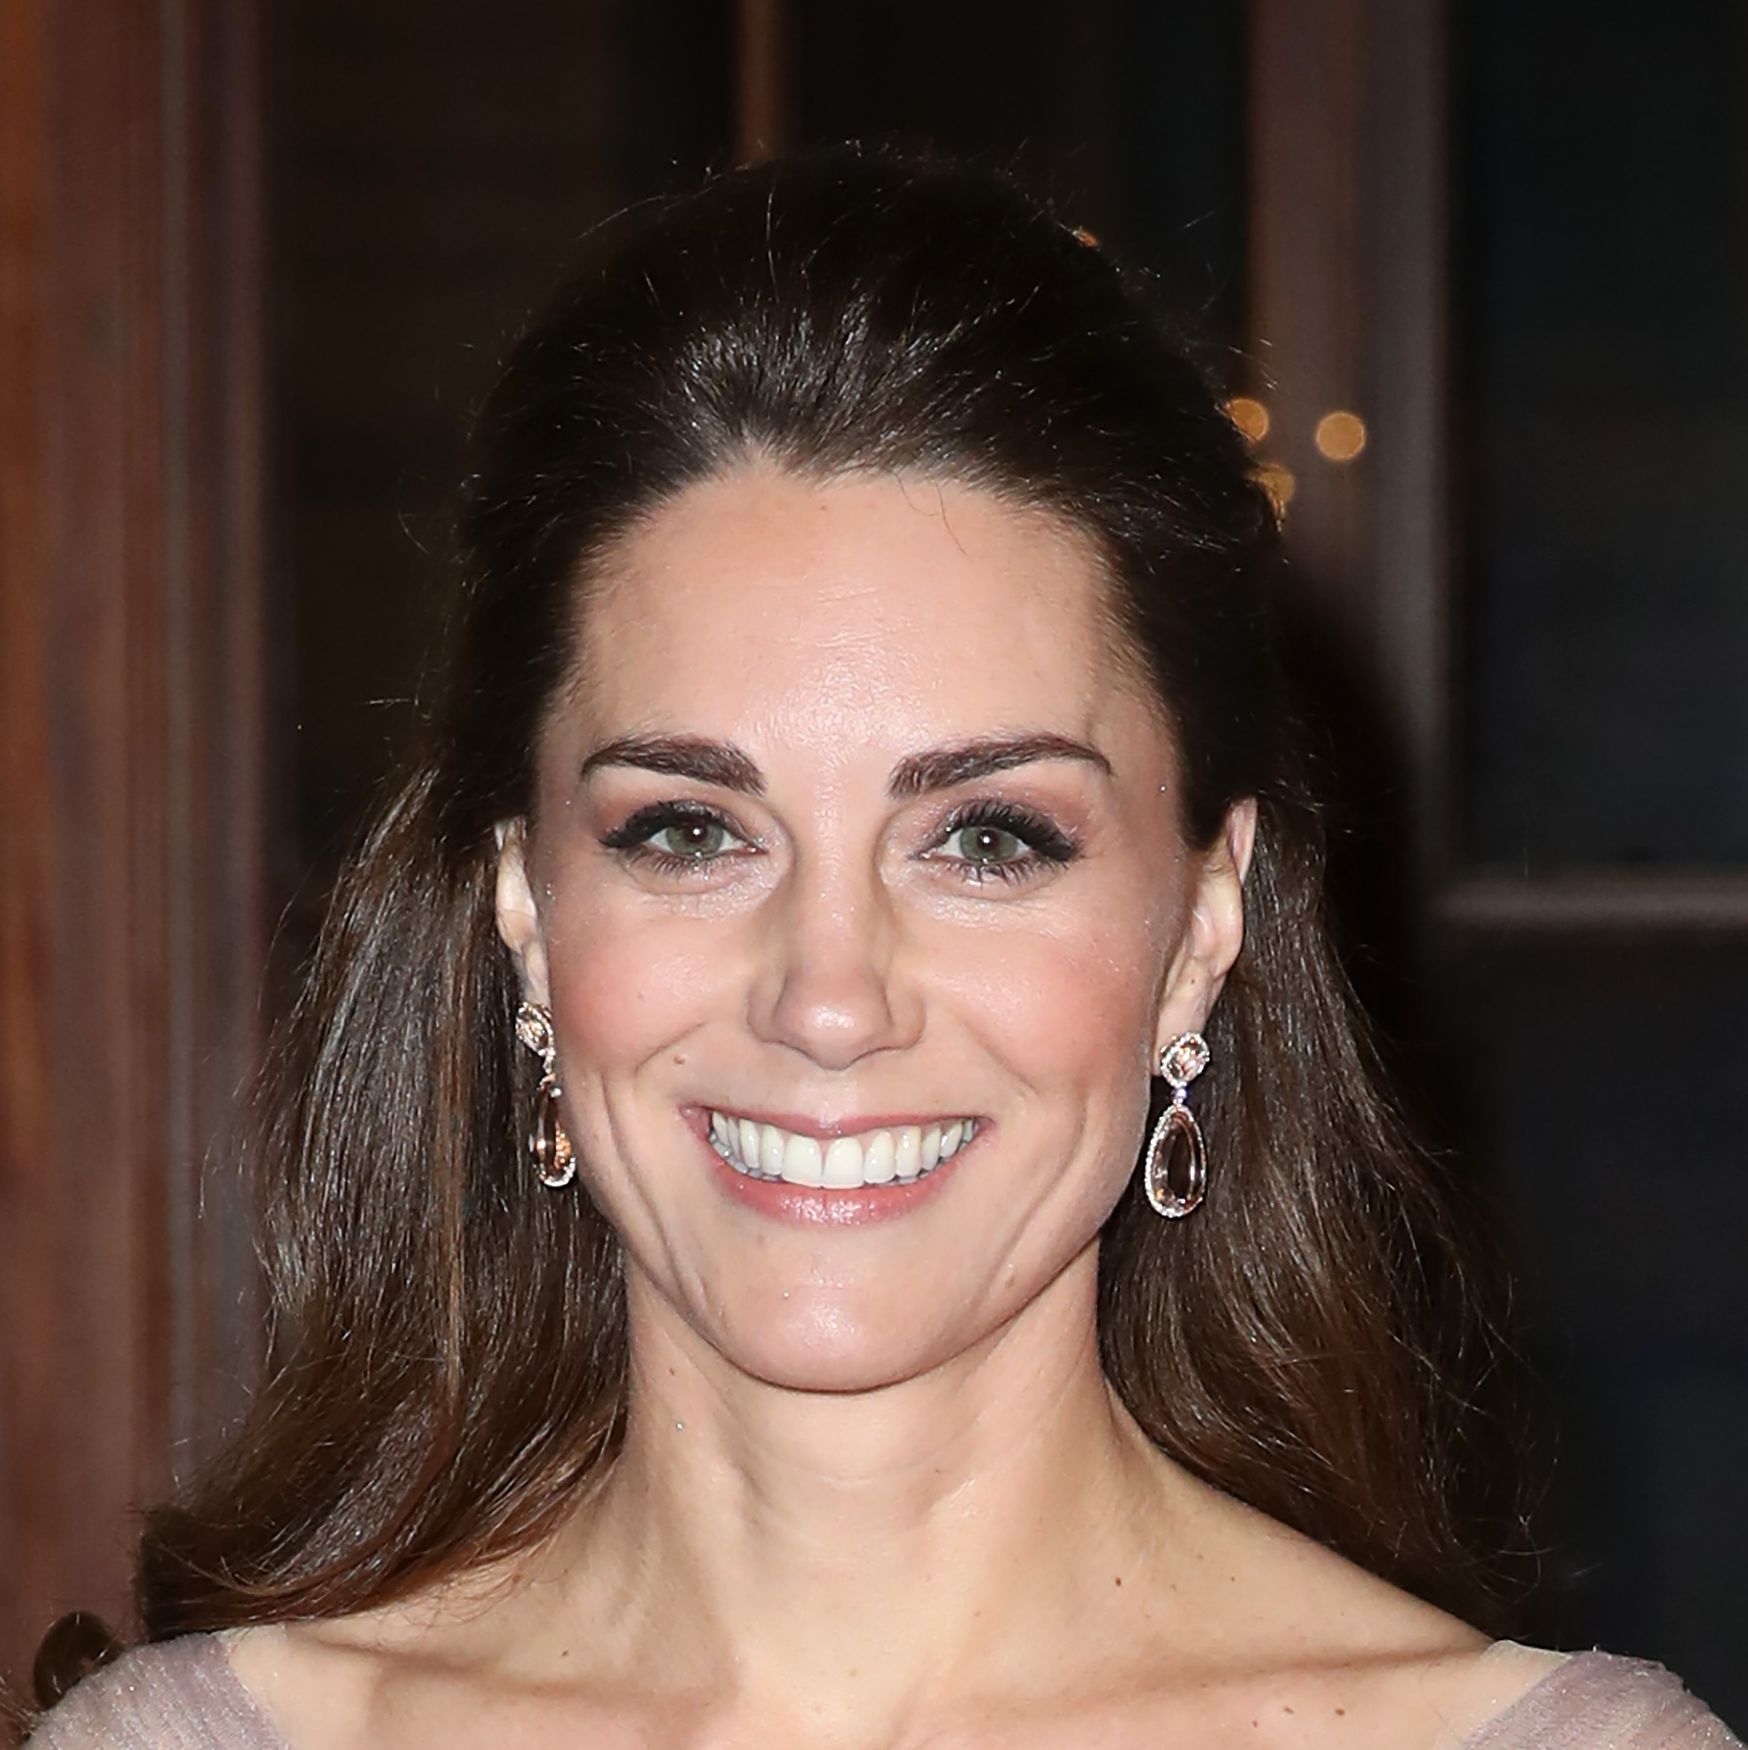 The Duchess of Cambridge wows in glamorous gown at the V&A